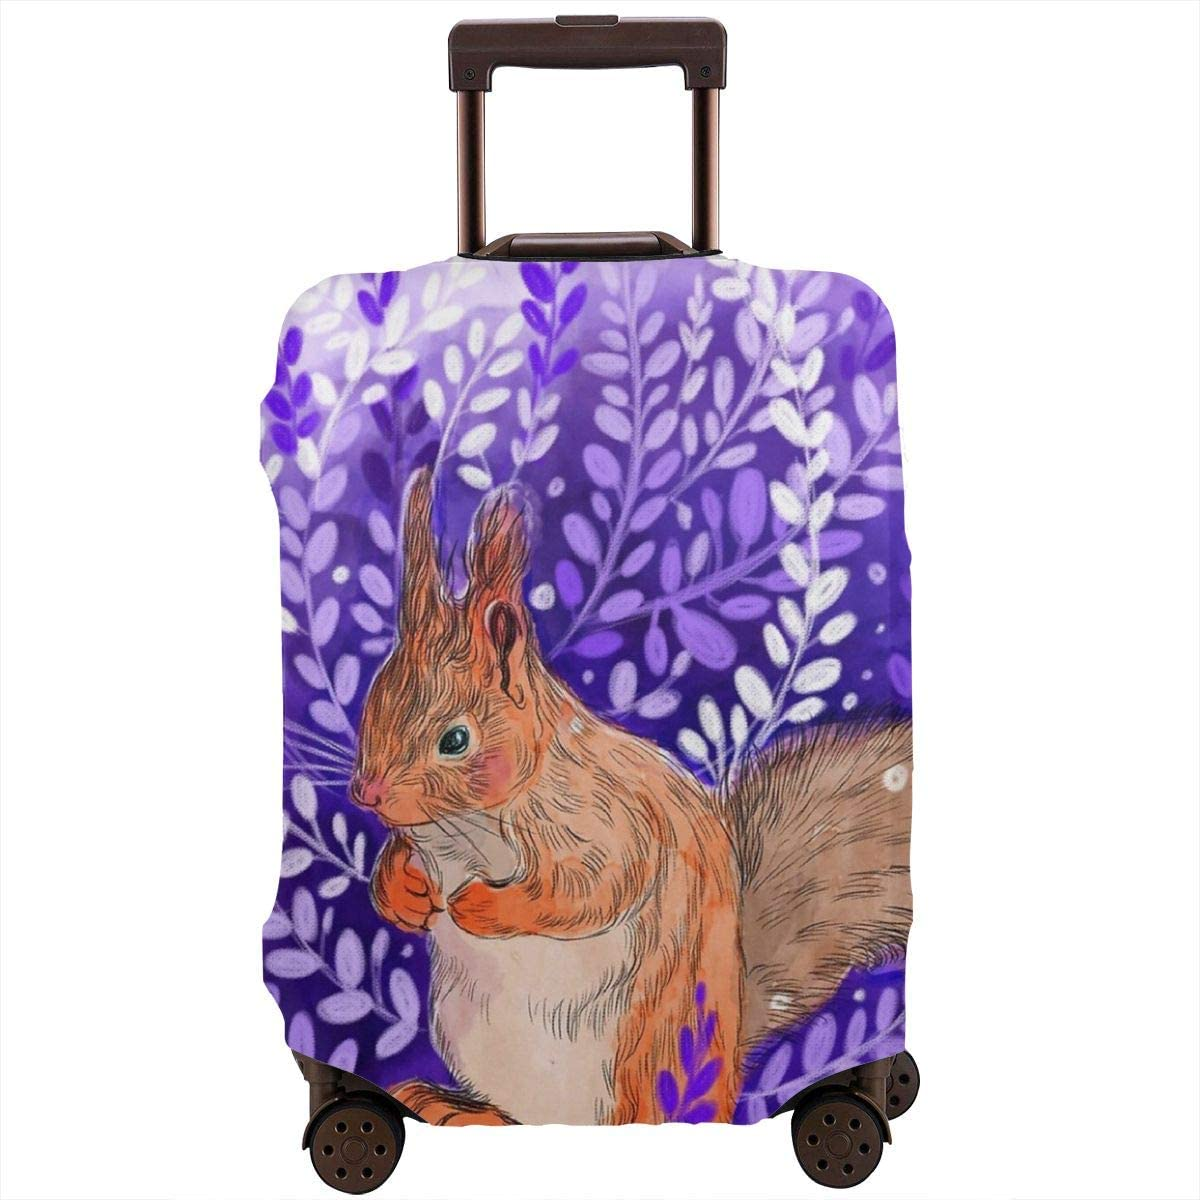 Luggage Cover Chipmunk Purple Primrose Protective Travel Trunk Case Elastic Luggage Suitcase Protector Cover